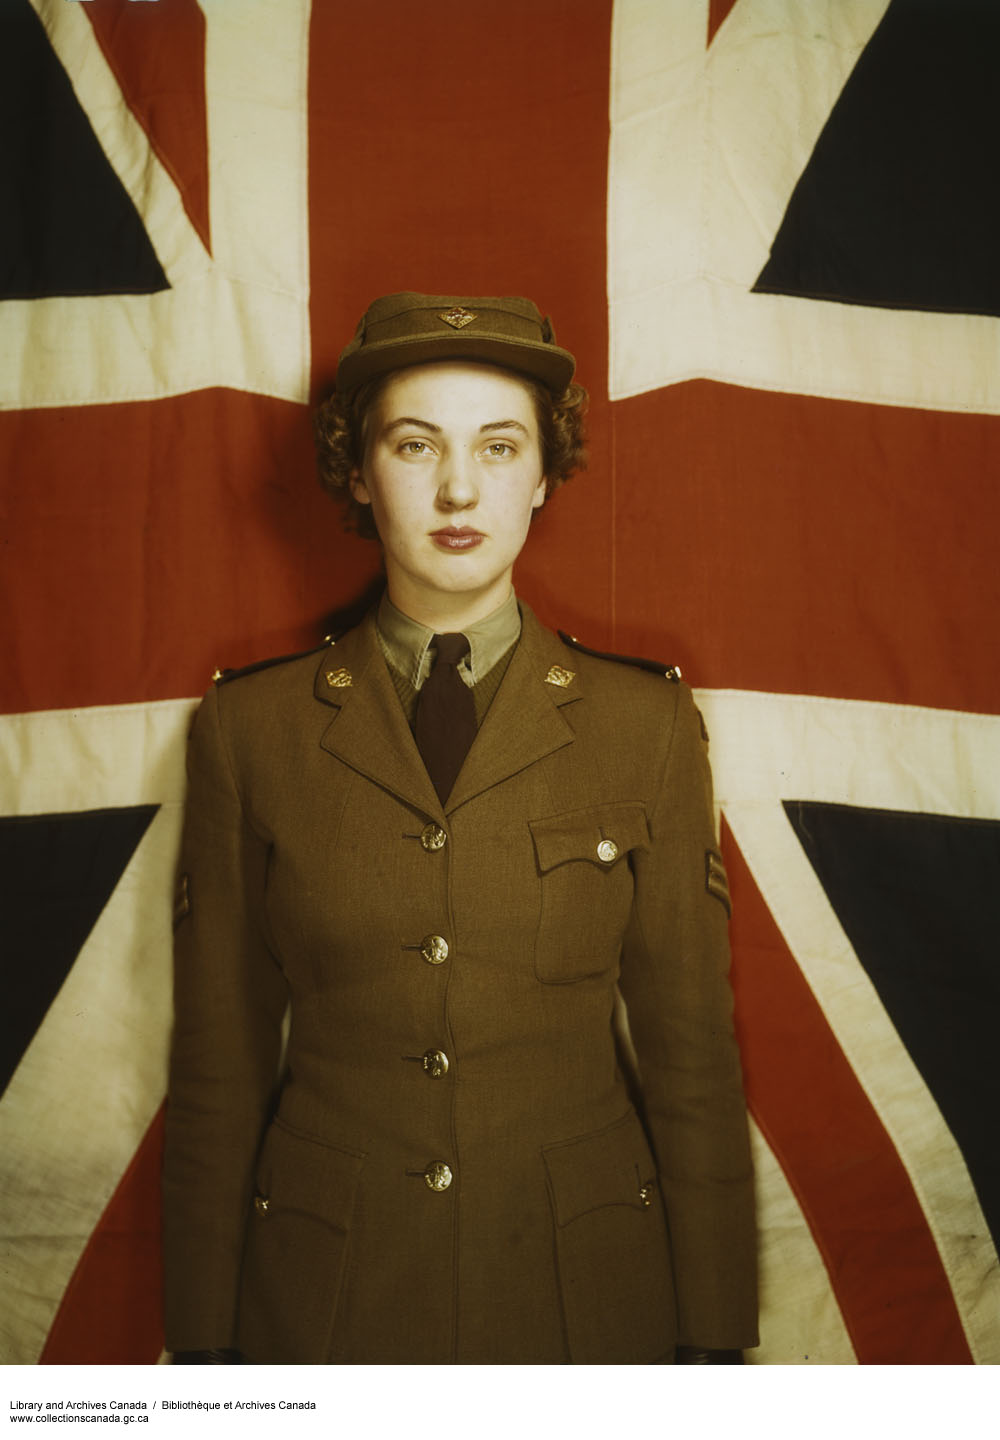 CWAC in front of Union Jack. (item 1)